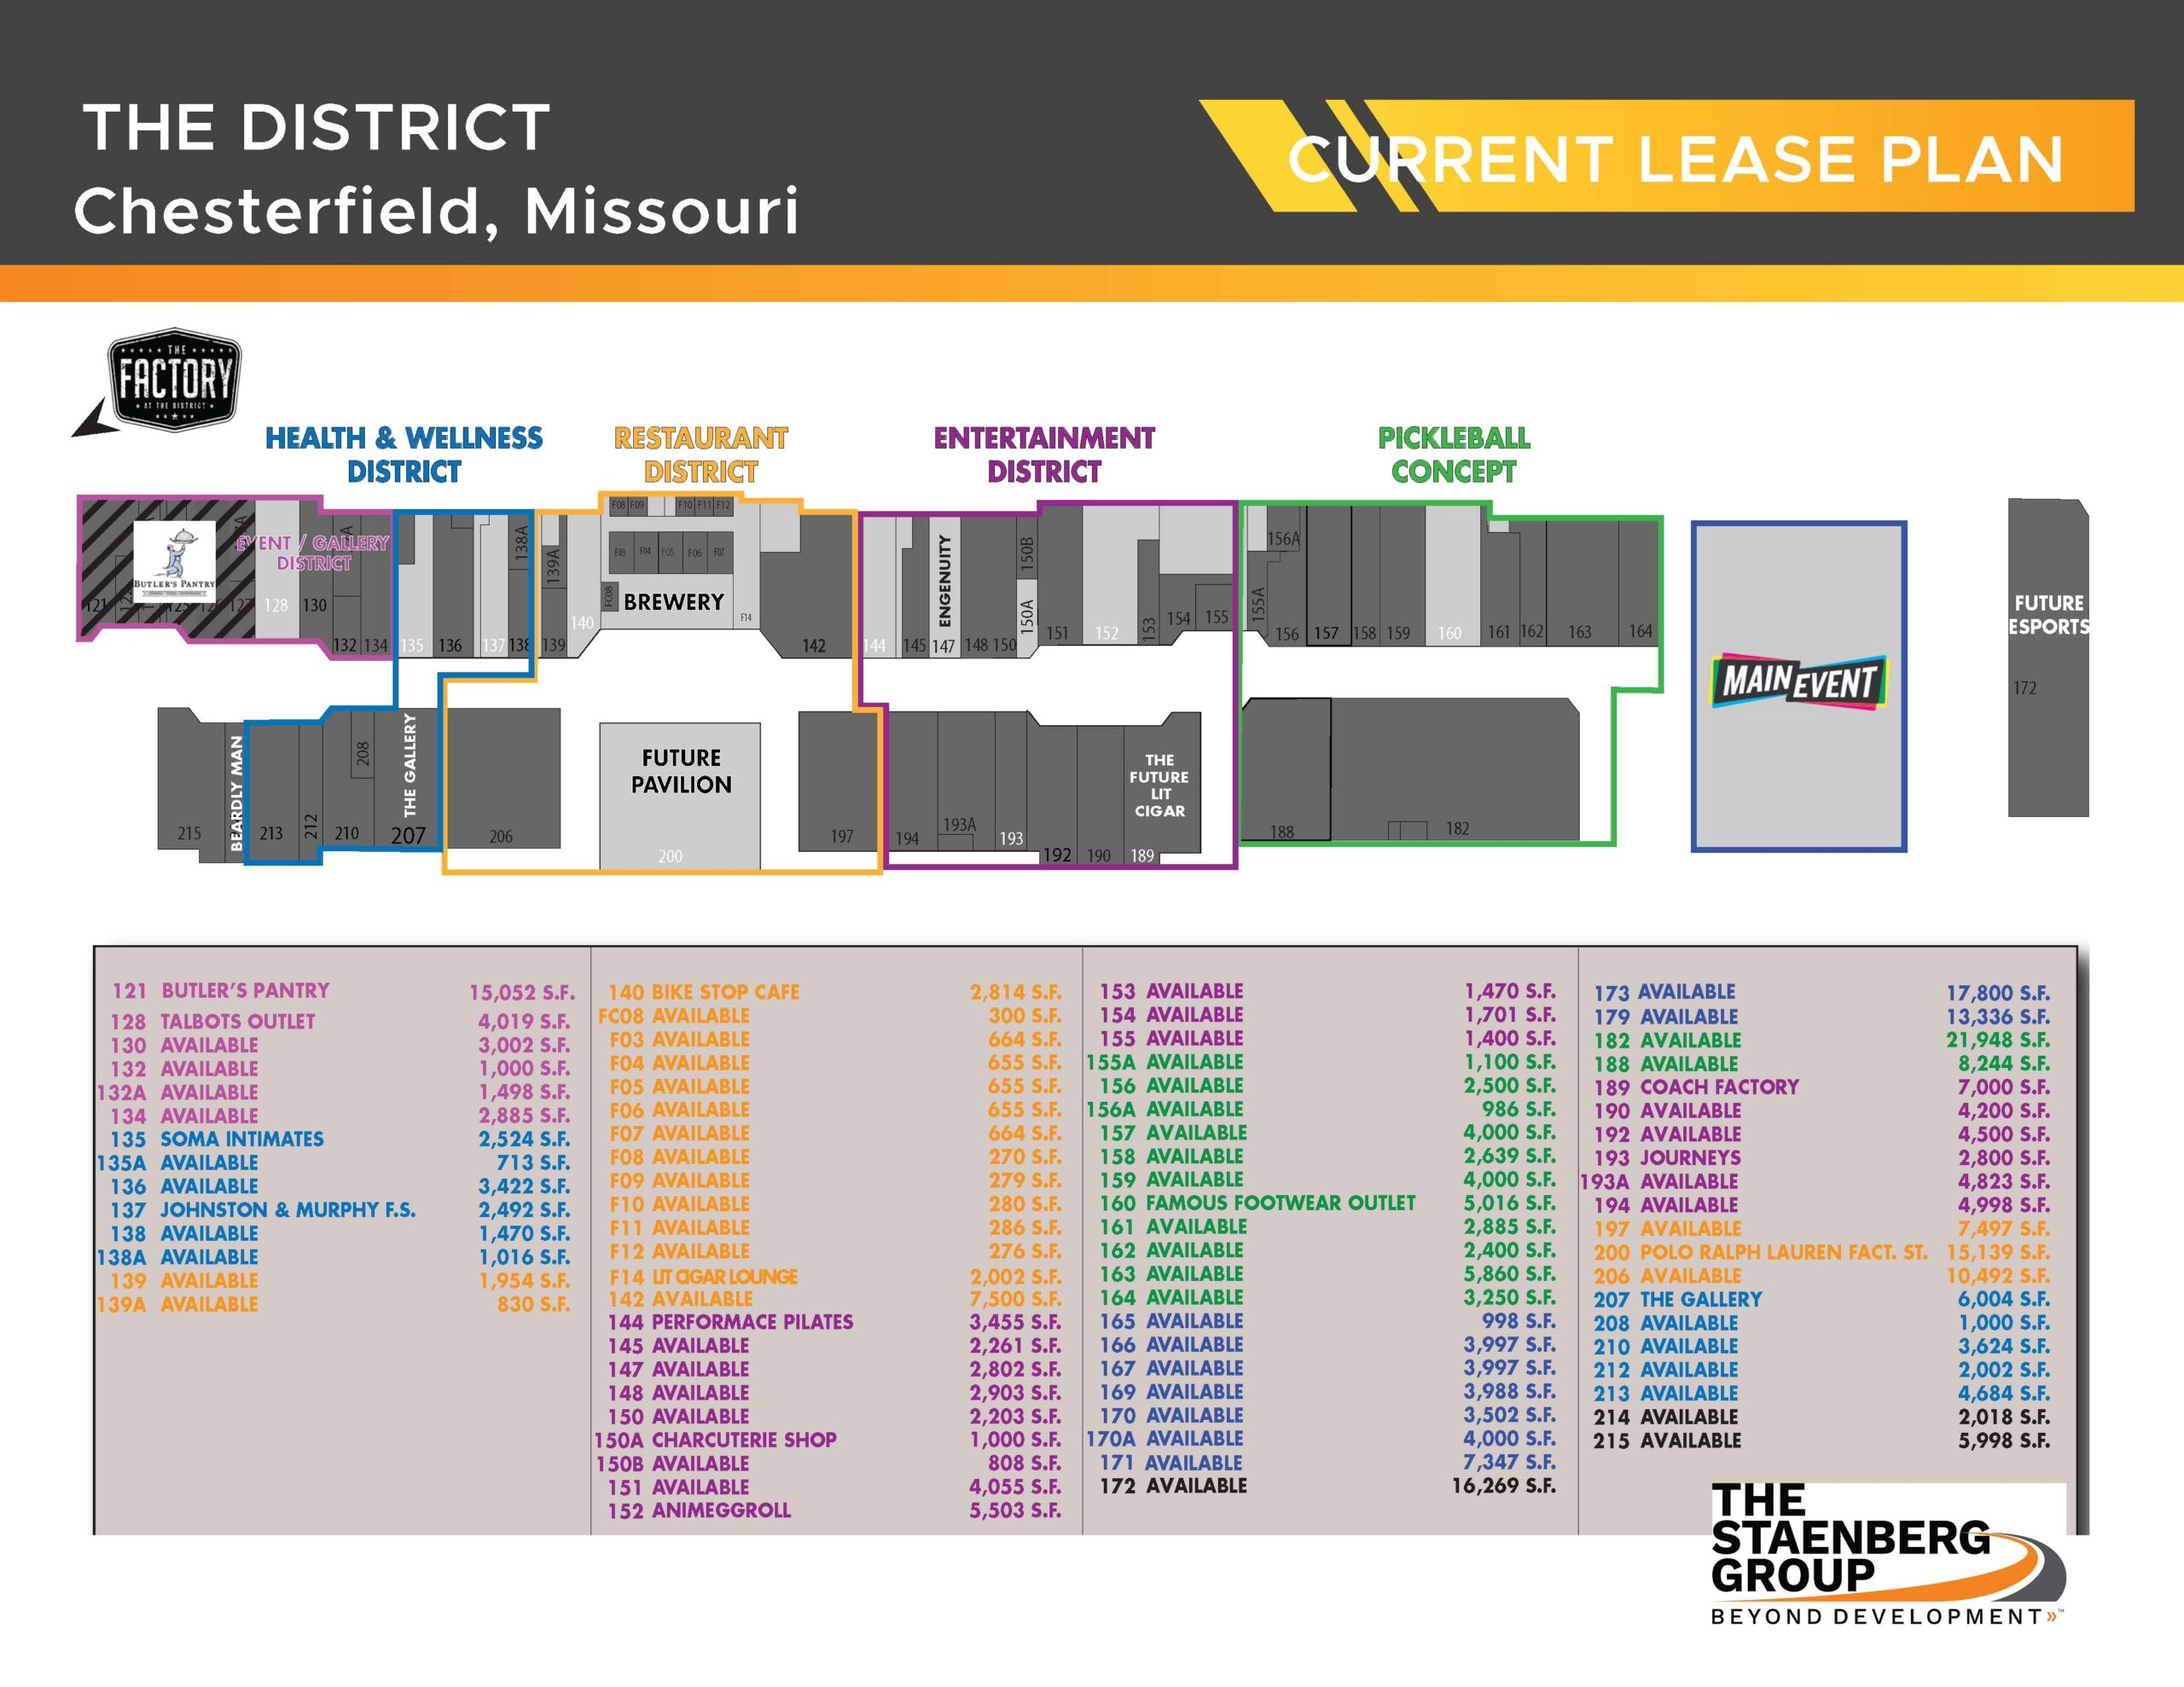 The-District-Current-Lease-Plan-scaled.jpg